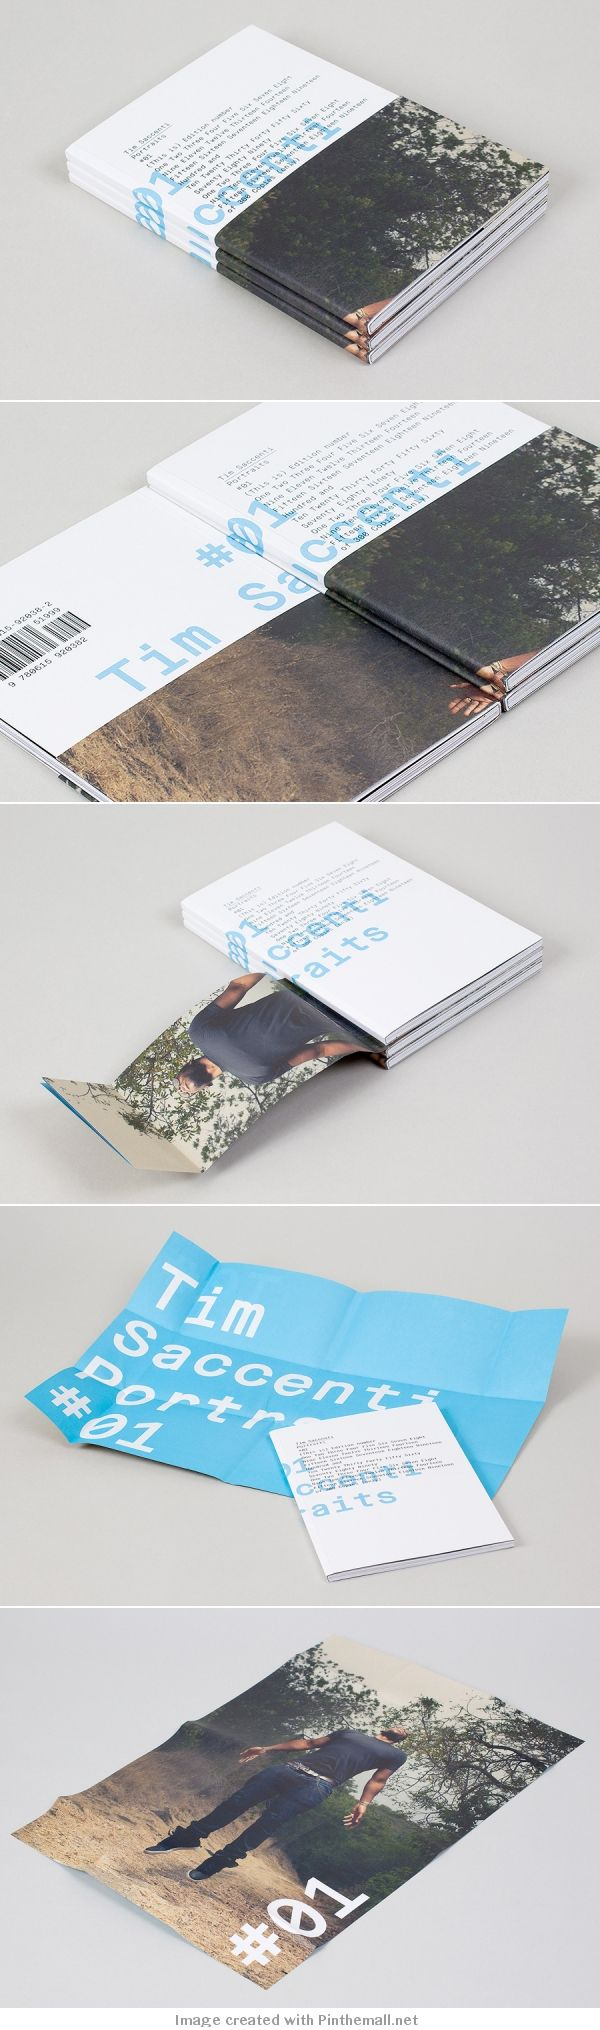 Photography Book | By Build